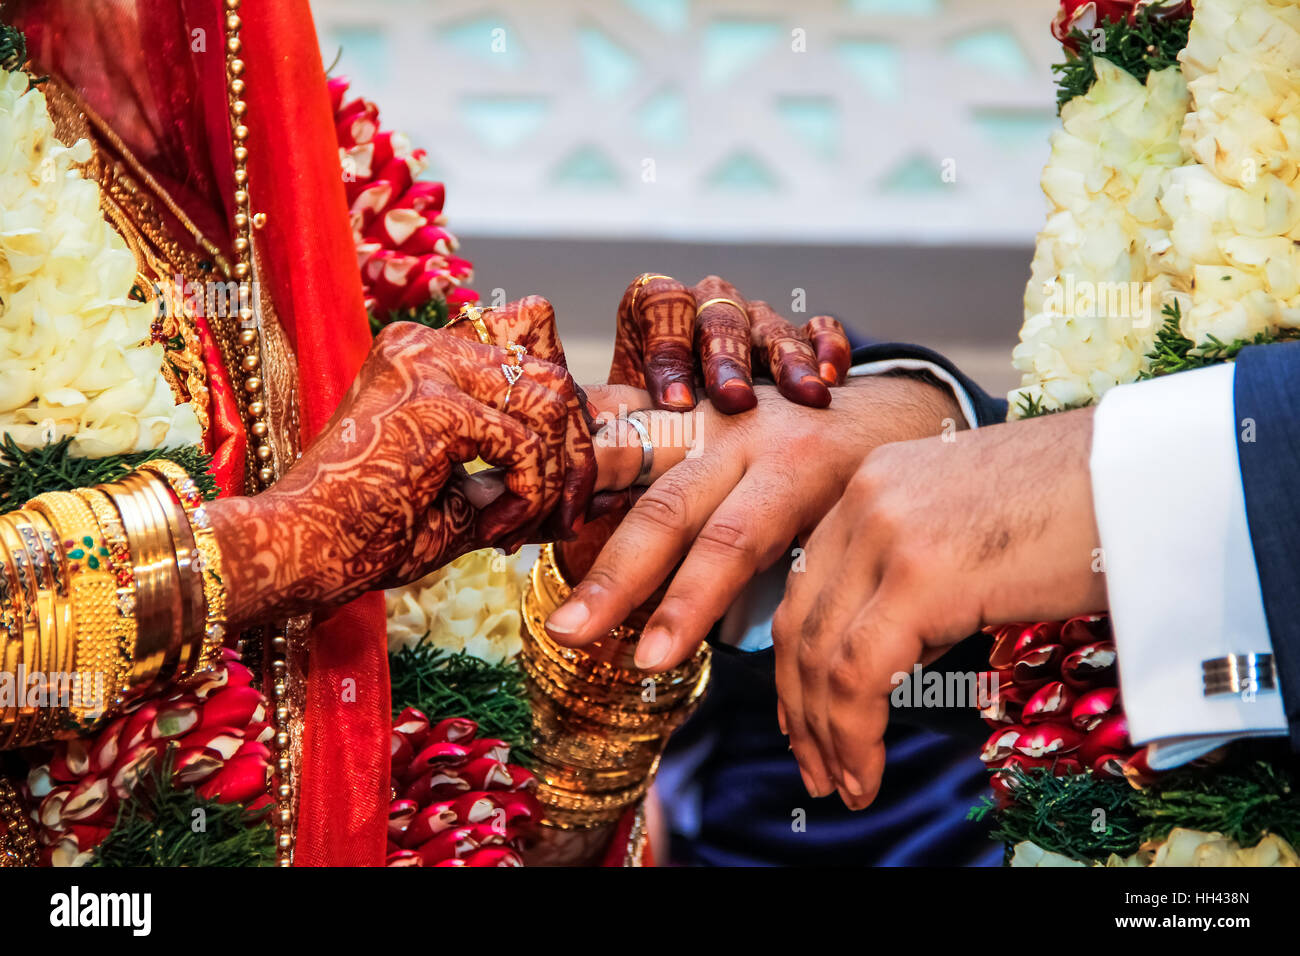 35843447b5866 Bride putting wedding ring on groom's finger at traditional south Indian  wedding ceremony - Stock Image